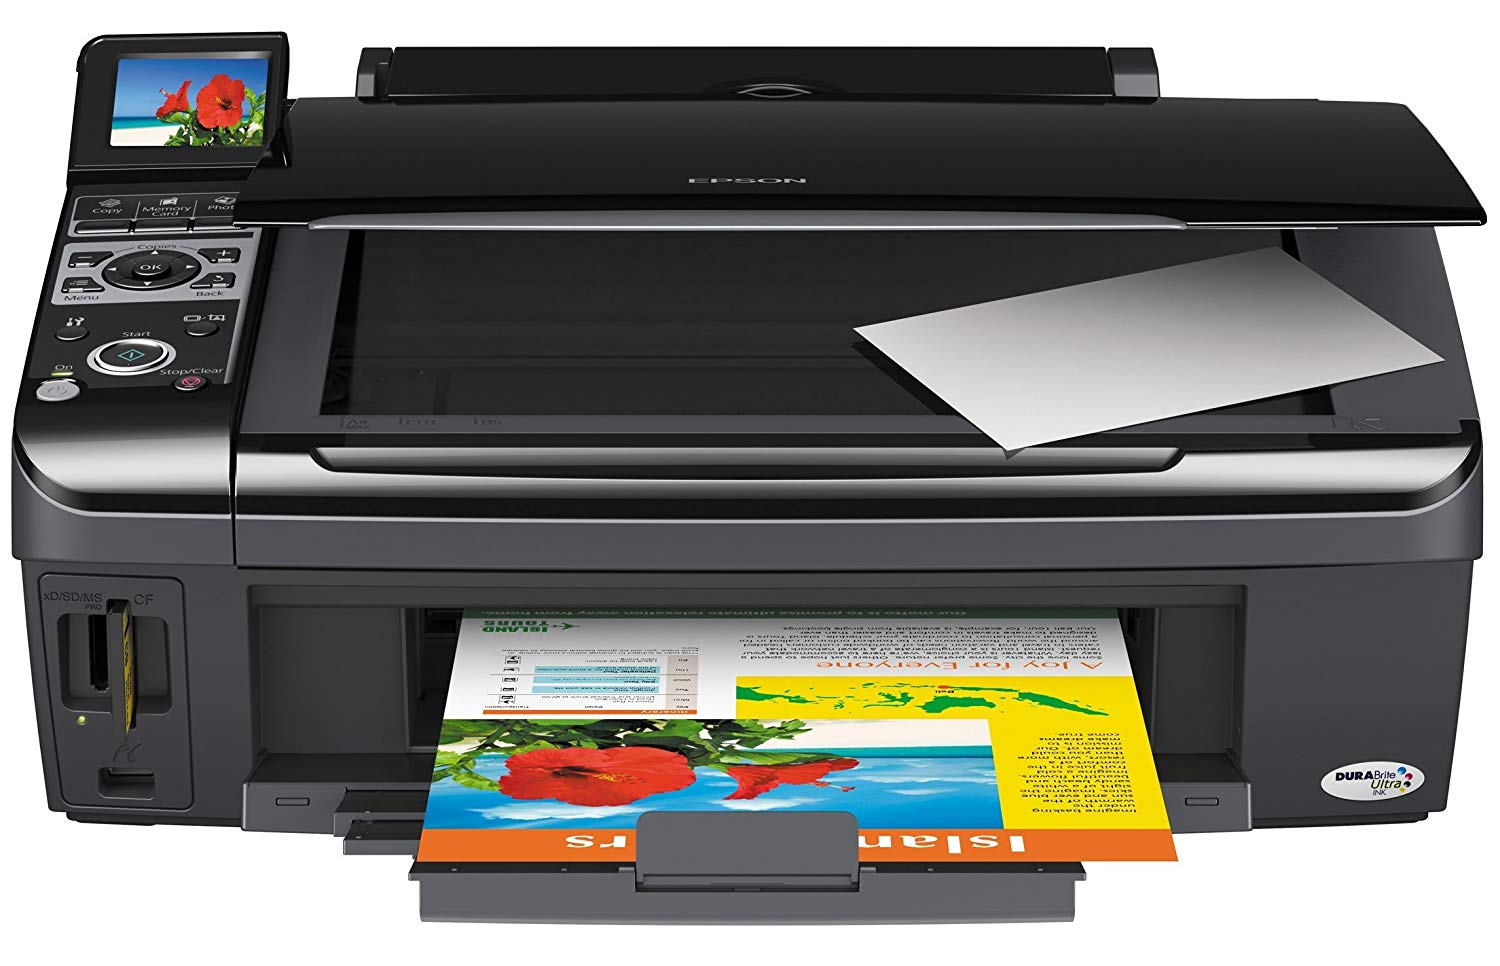 Epson SX400 printer drivers